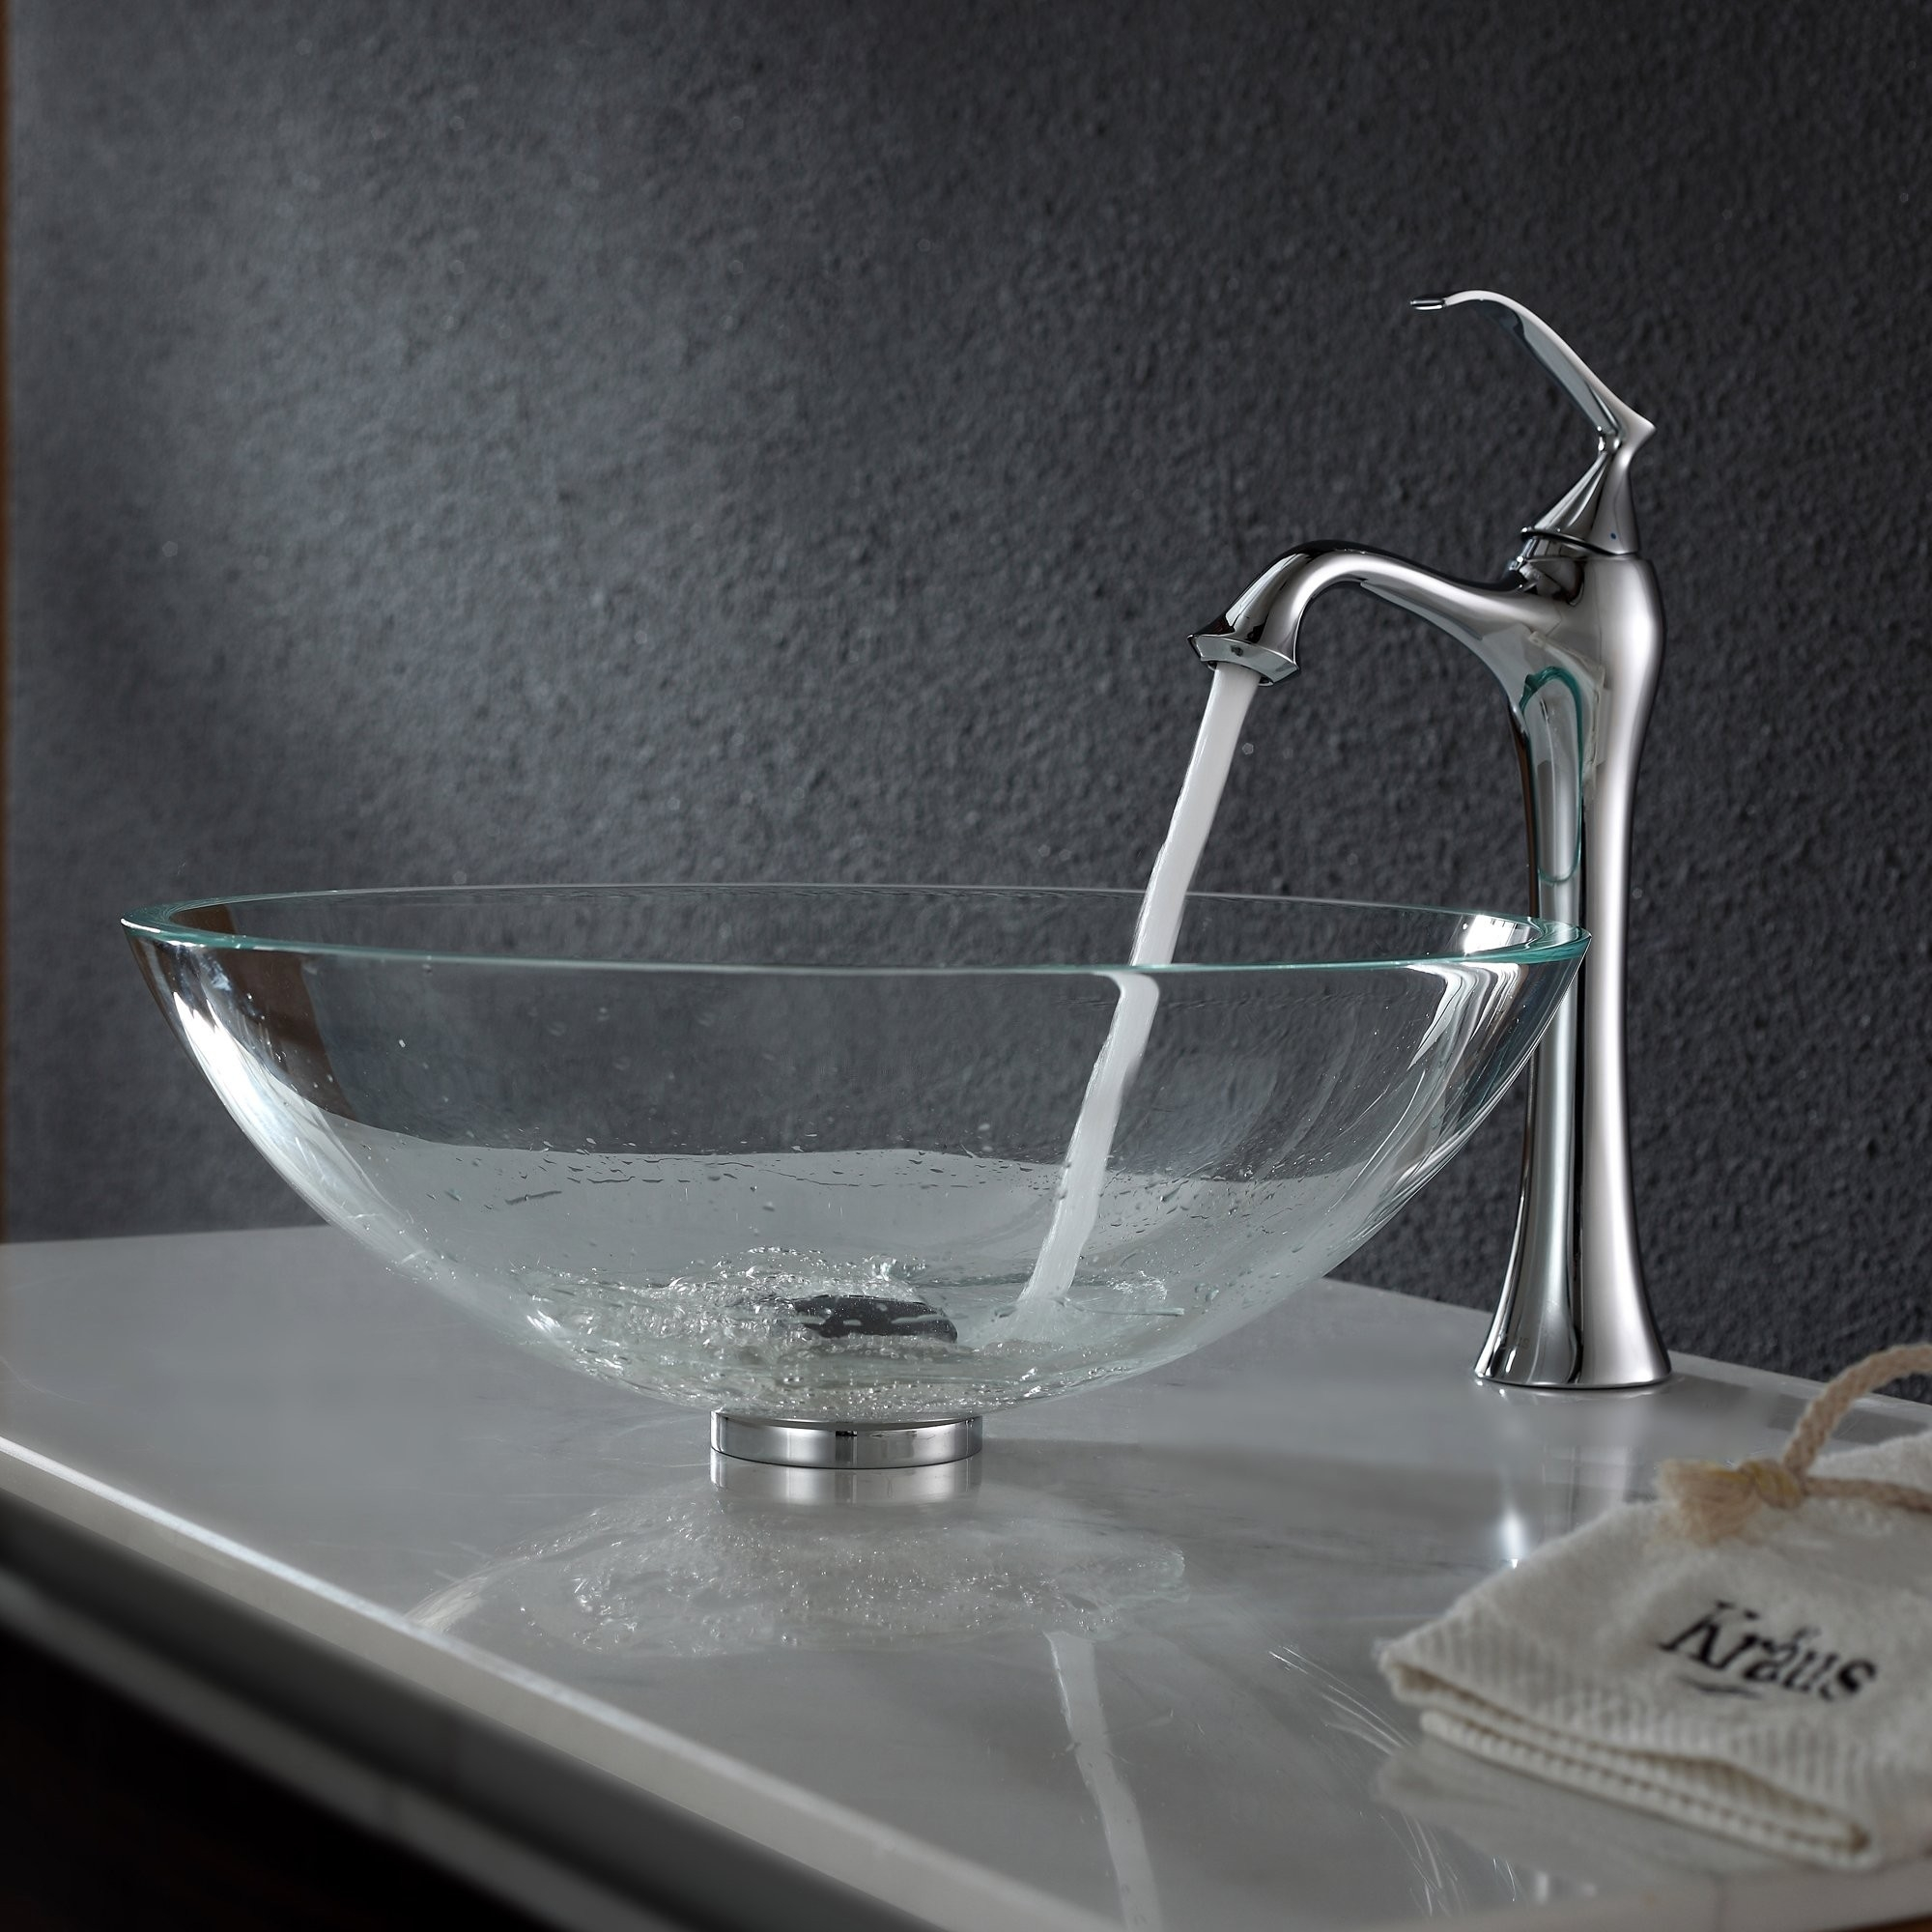 Ideas, bathroom glass vessel sink and faucet combination kraususa pertaining to dimensions 2000 x 2000  .